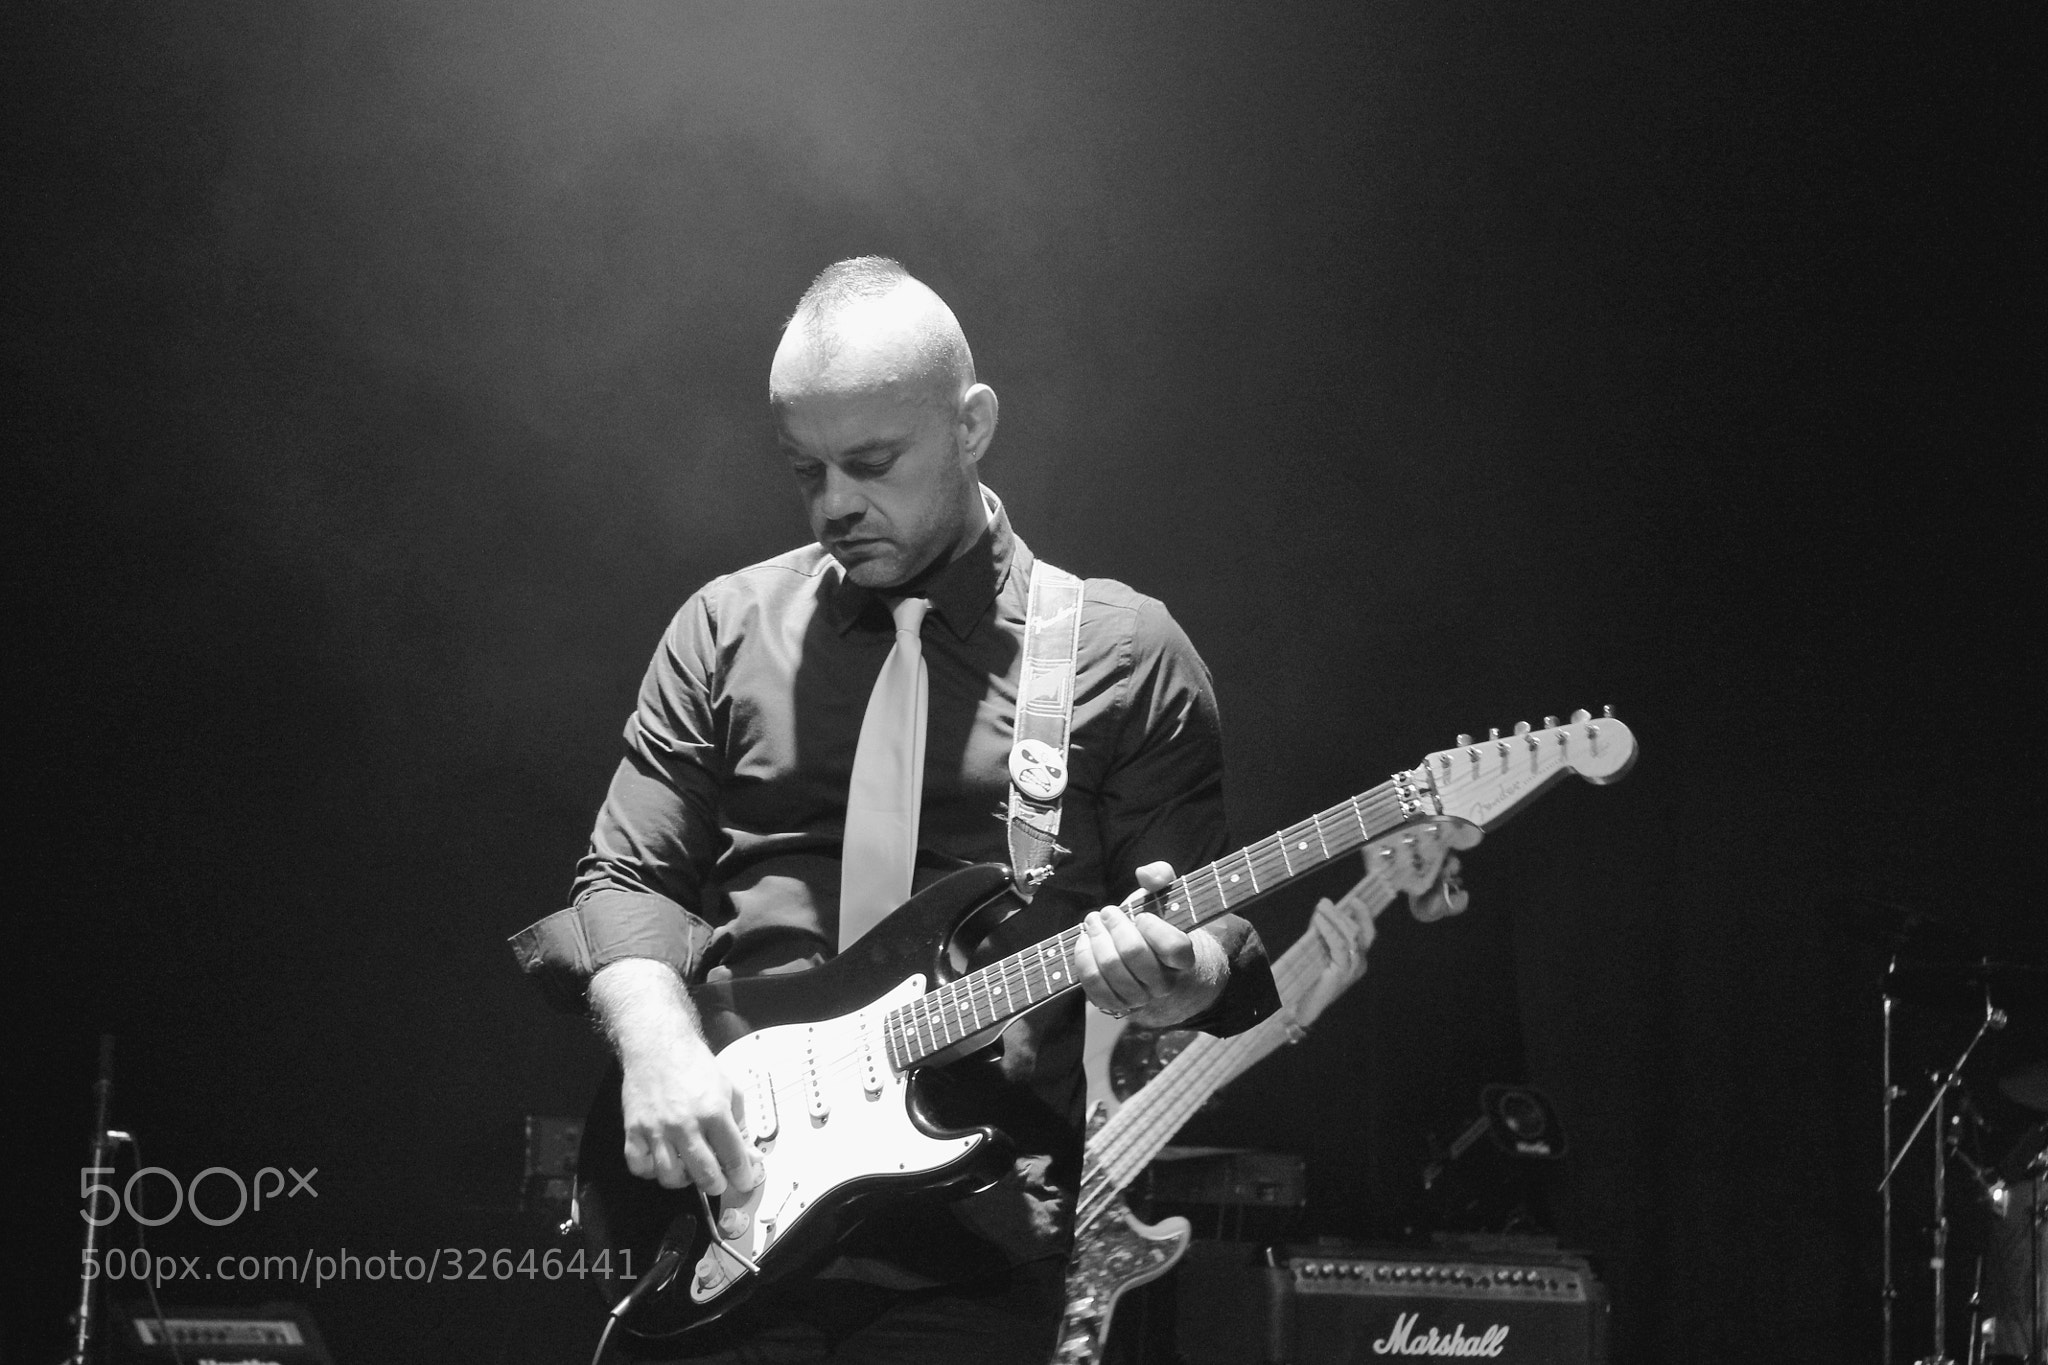 Photograph The guitariste by richard cauchy on 500px